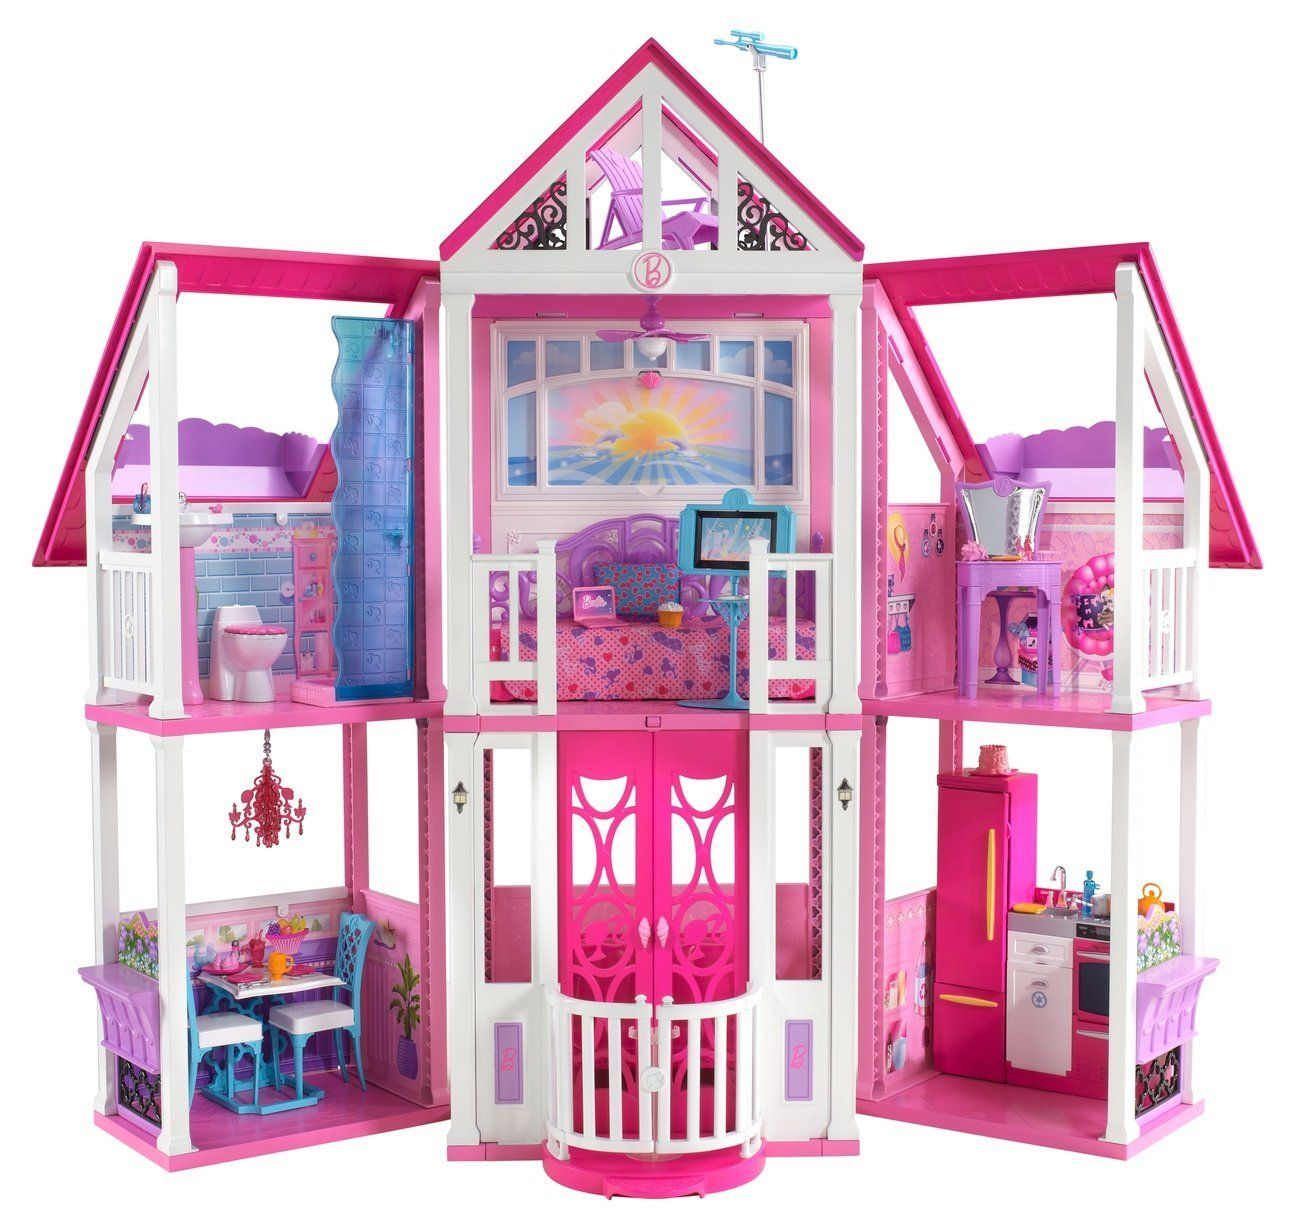 Barbie deluxe furniture stovetop to tabletop kitchen doll target - Explore Mattel Barbie Barbie Dolls And More